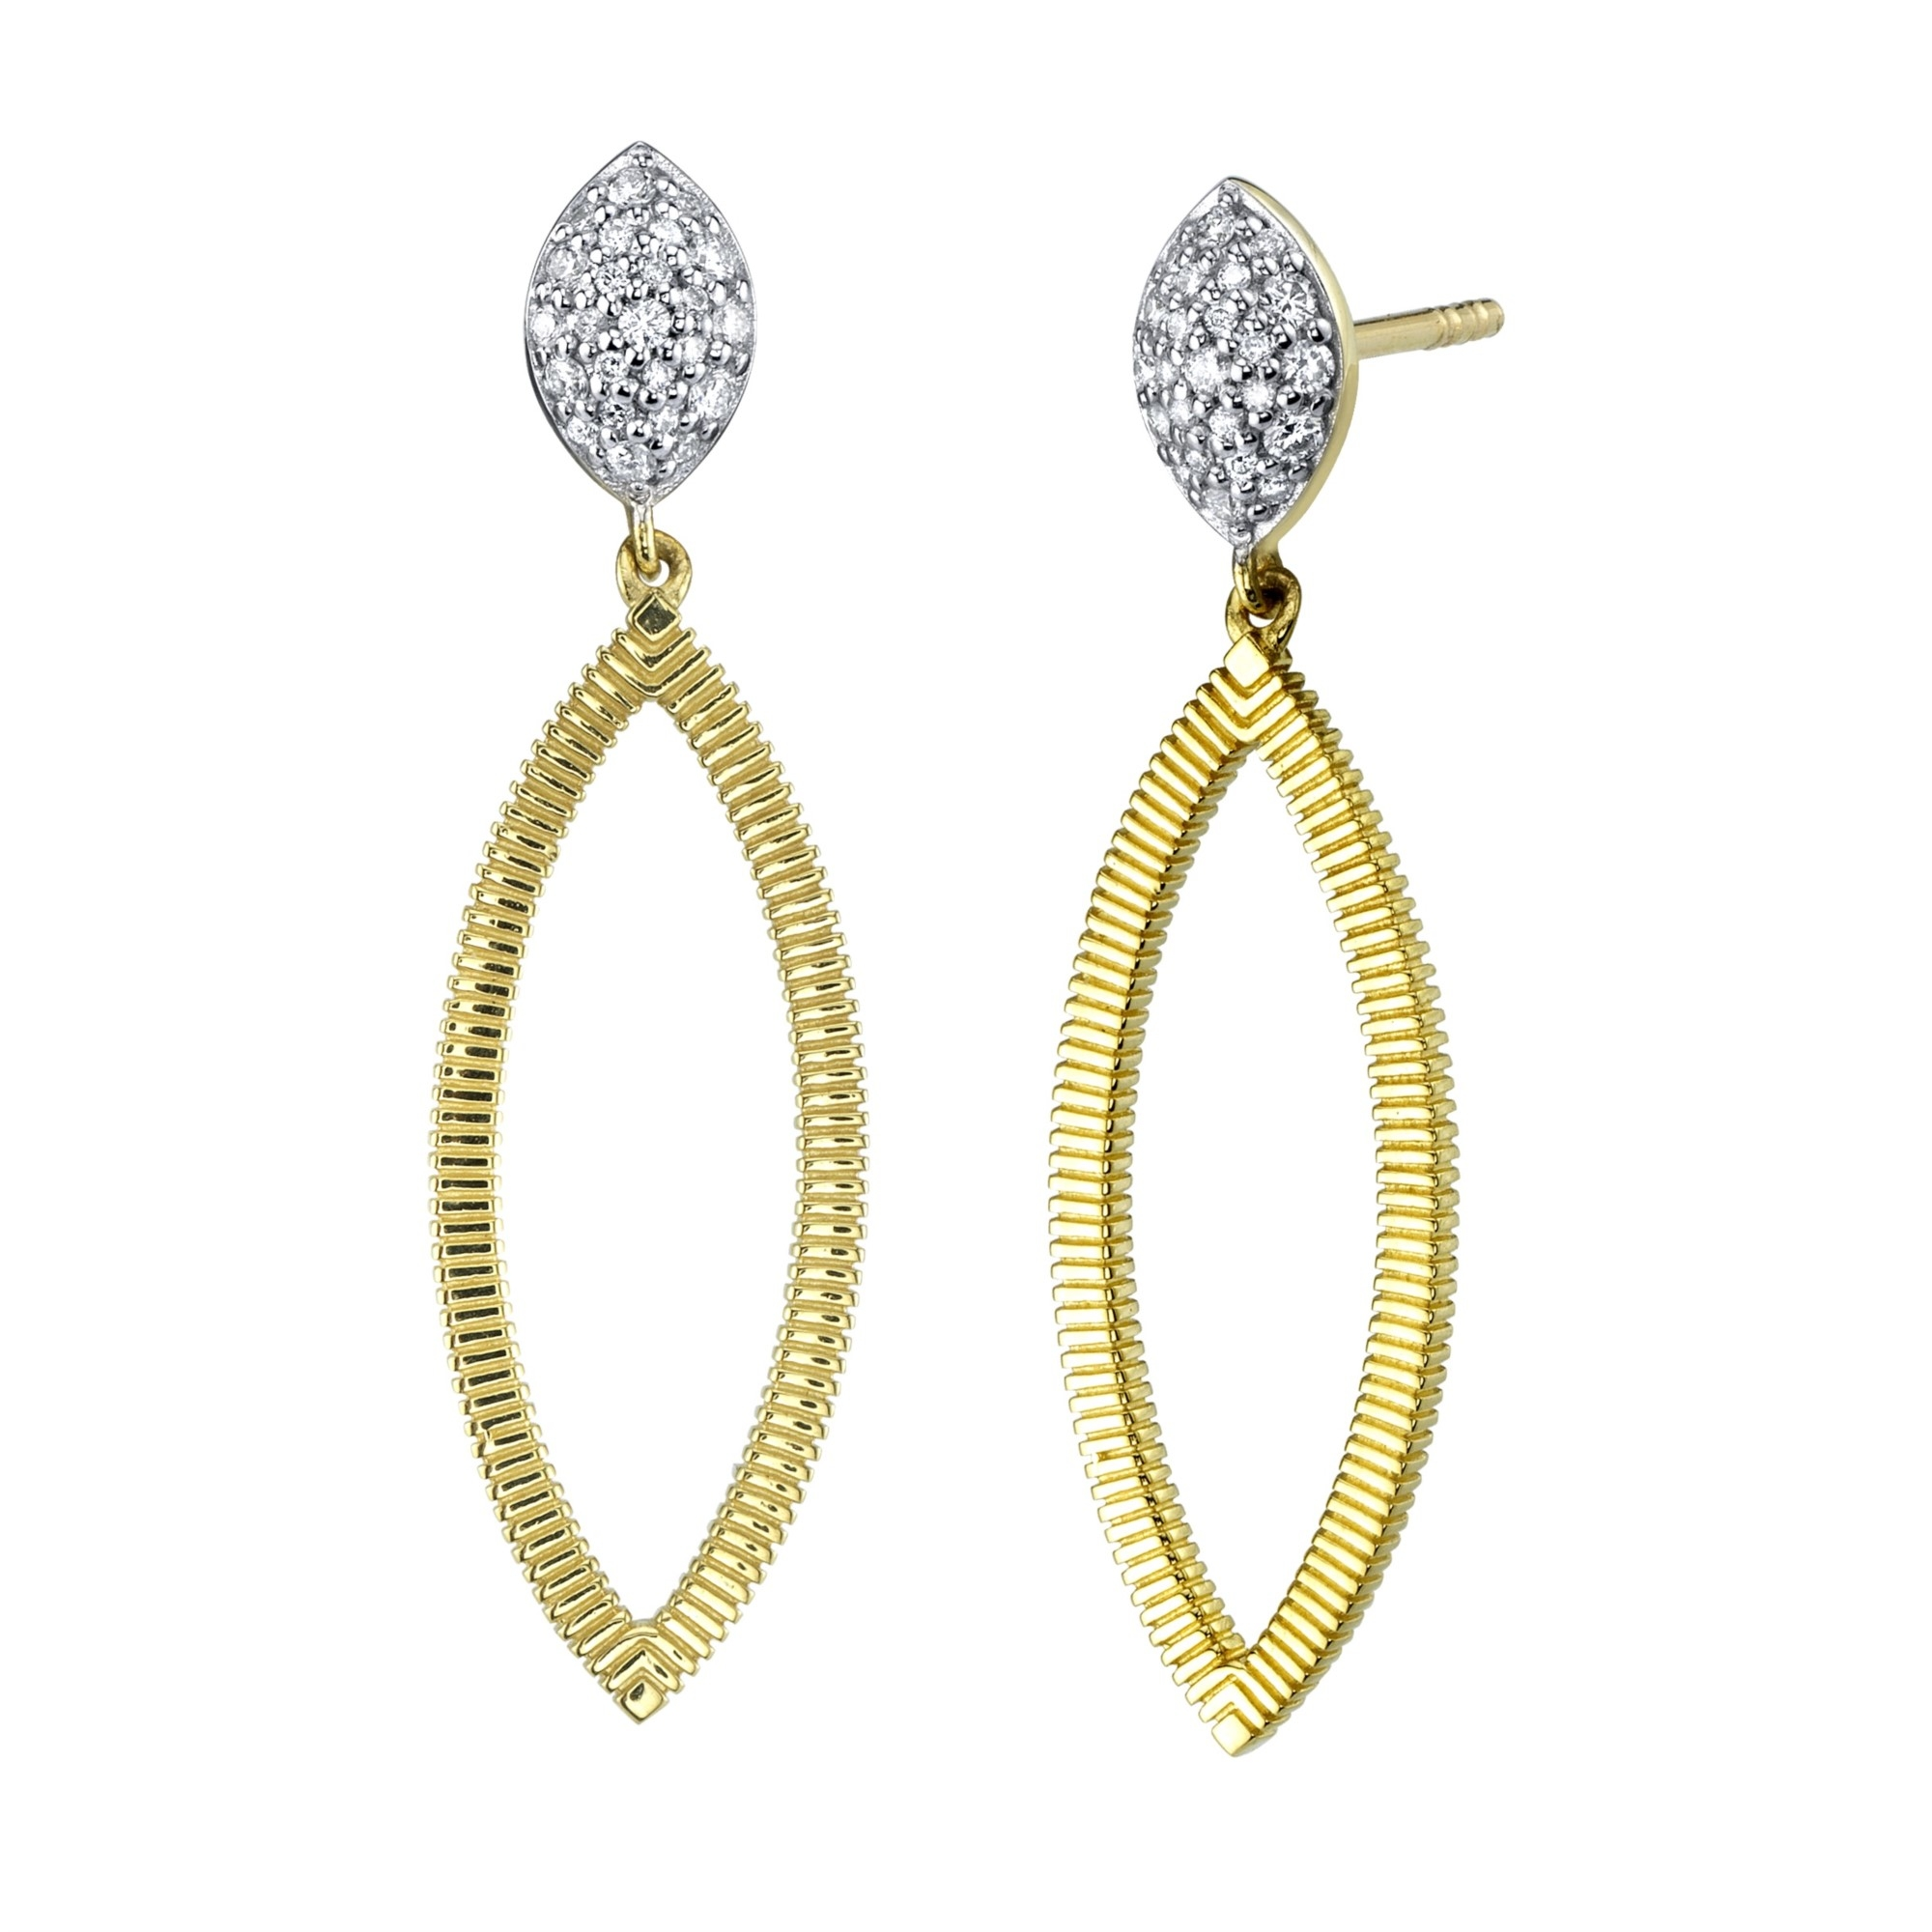 Sloane Street 18K Yellow Gold .21cts  Diamonds Gold Earrings with Stones E005E-WDCB-Y